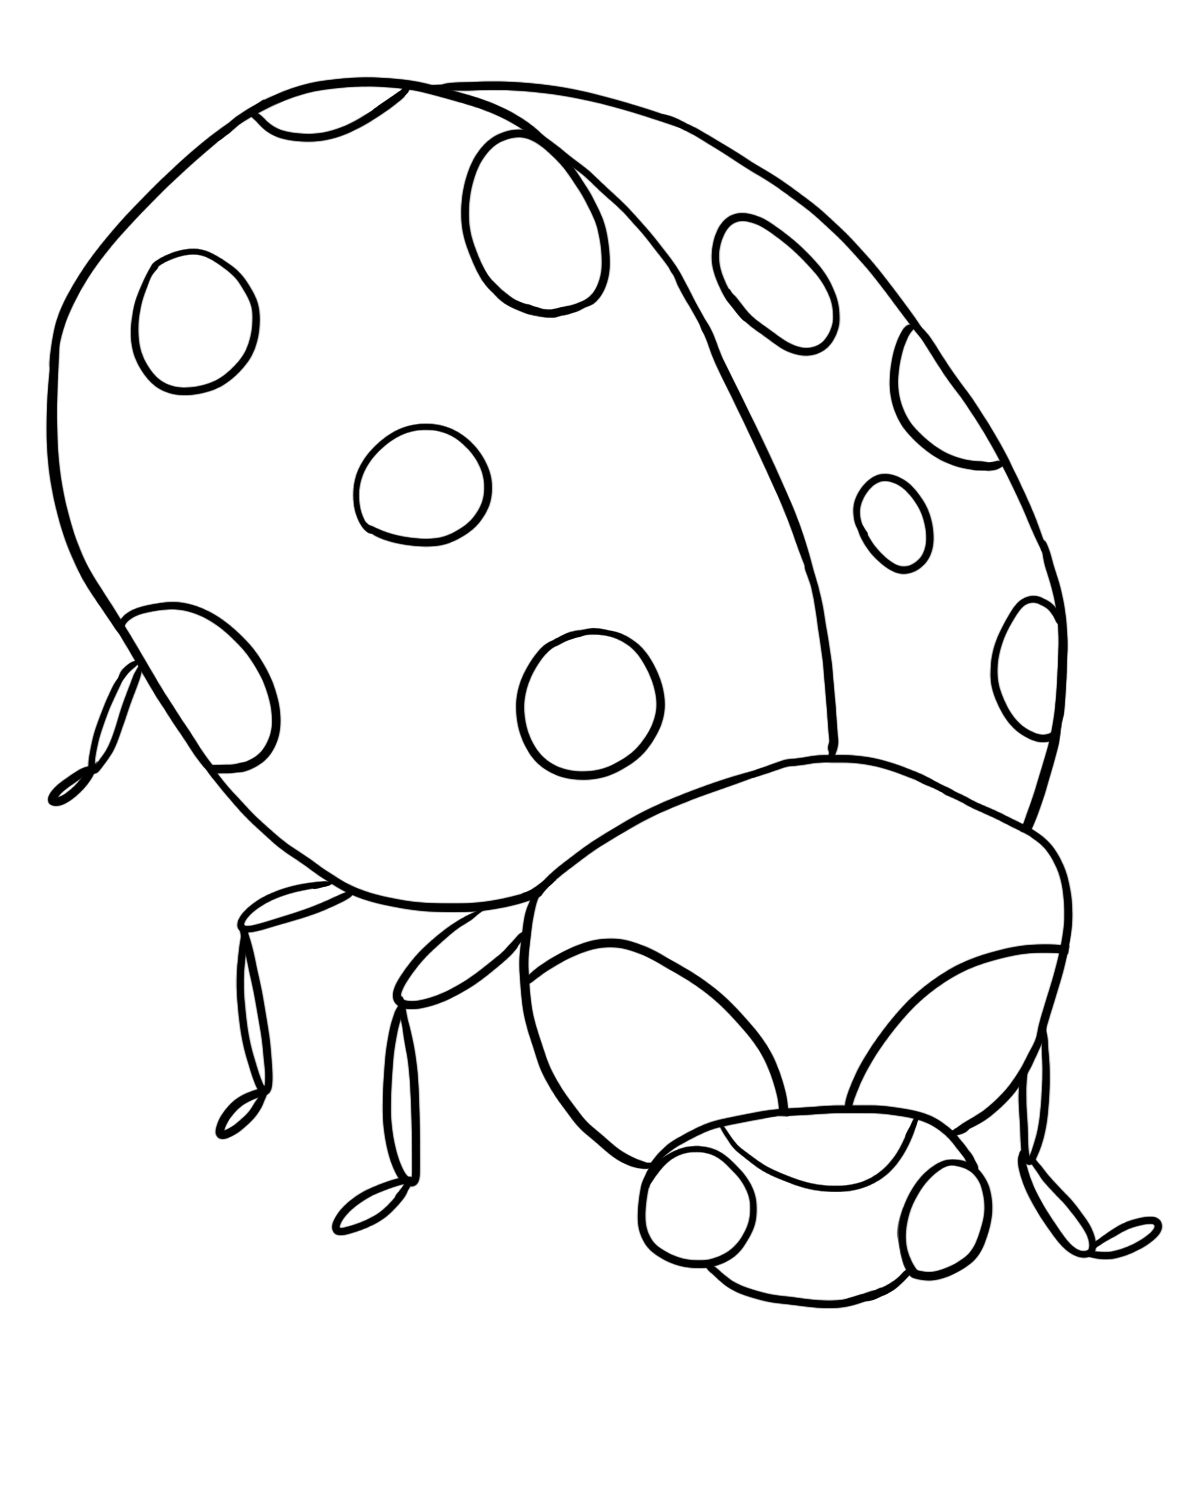 free ladybug coloring page lb4 - Colour In Sheet